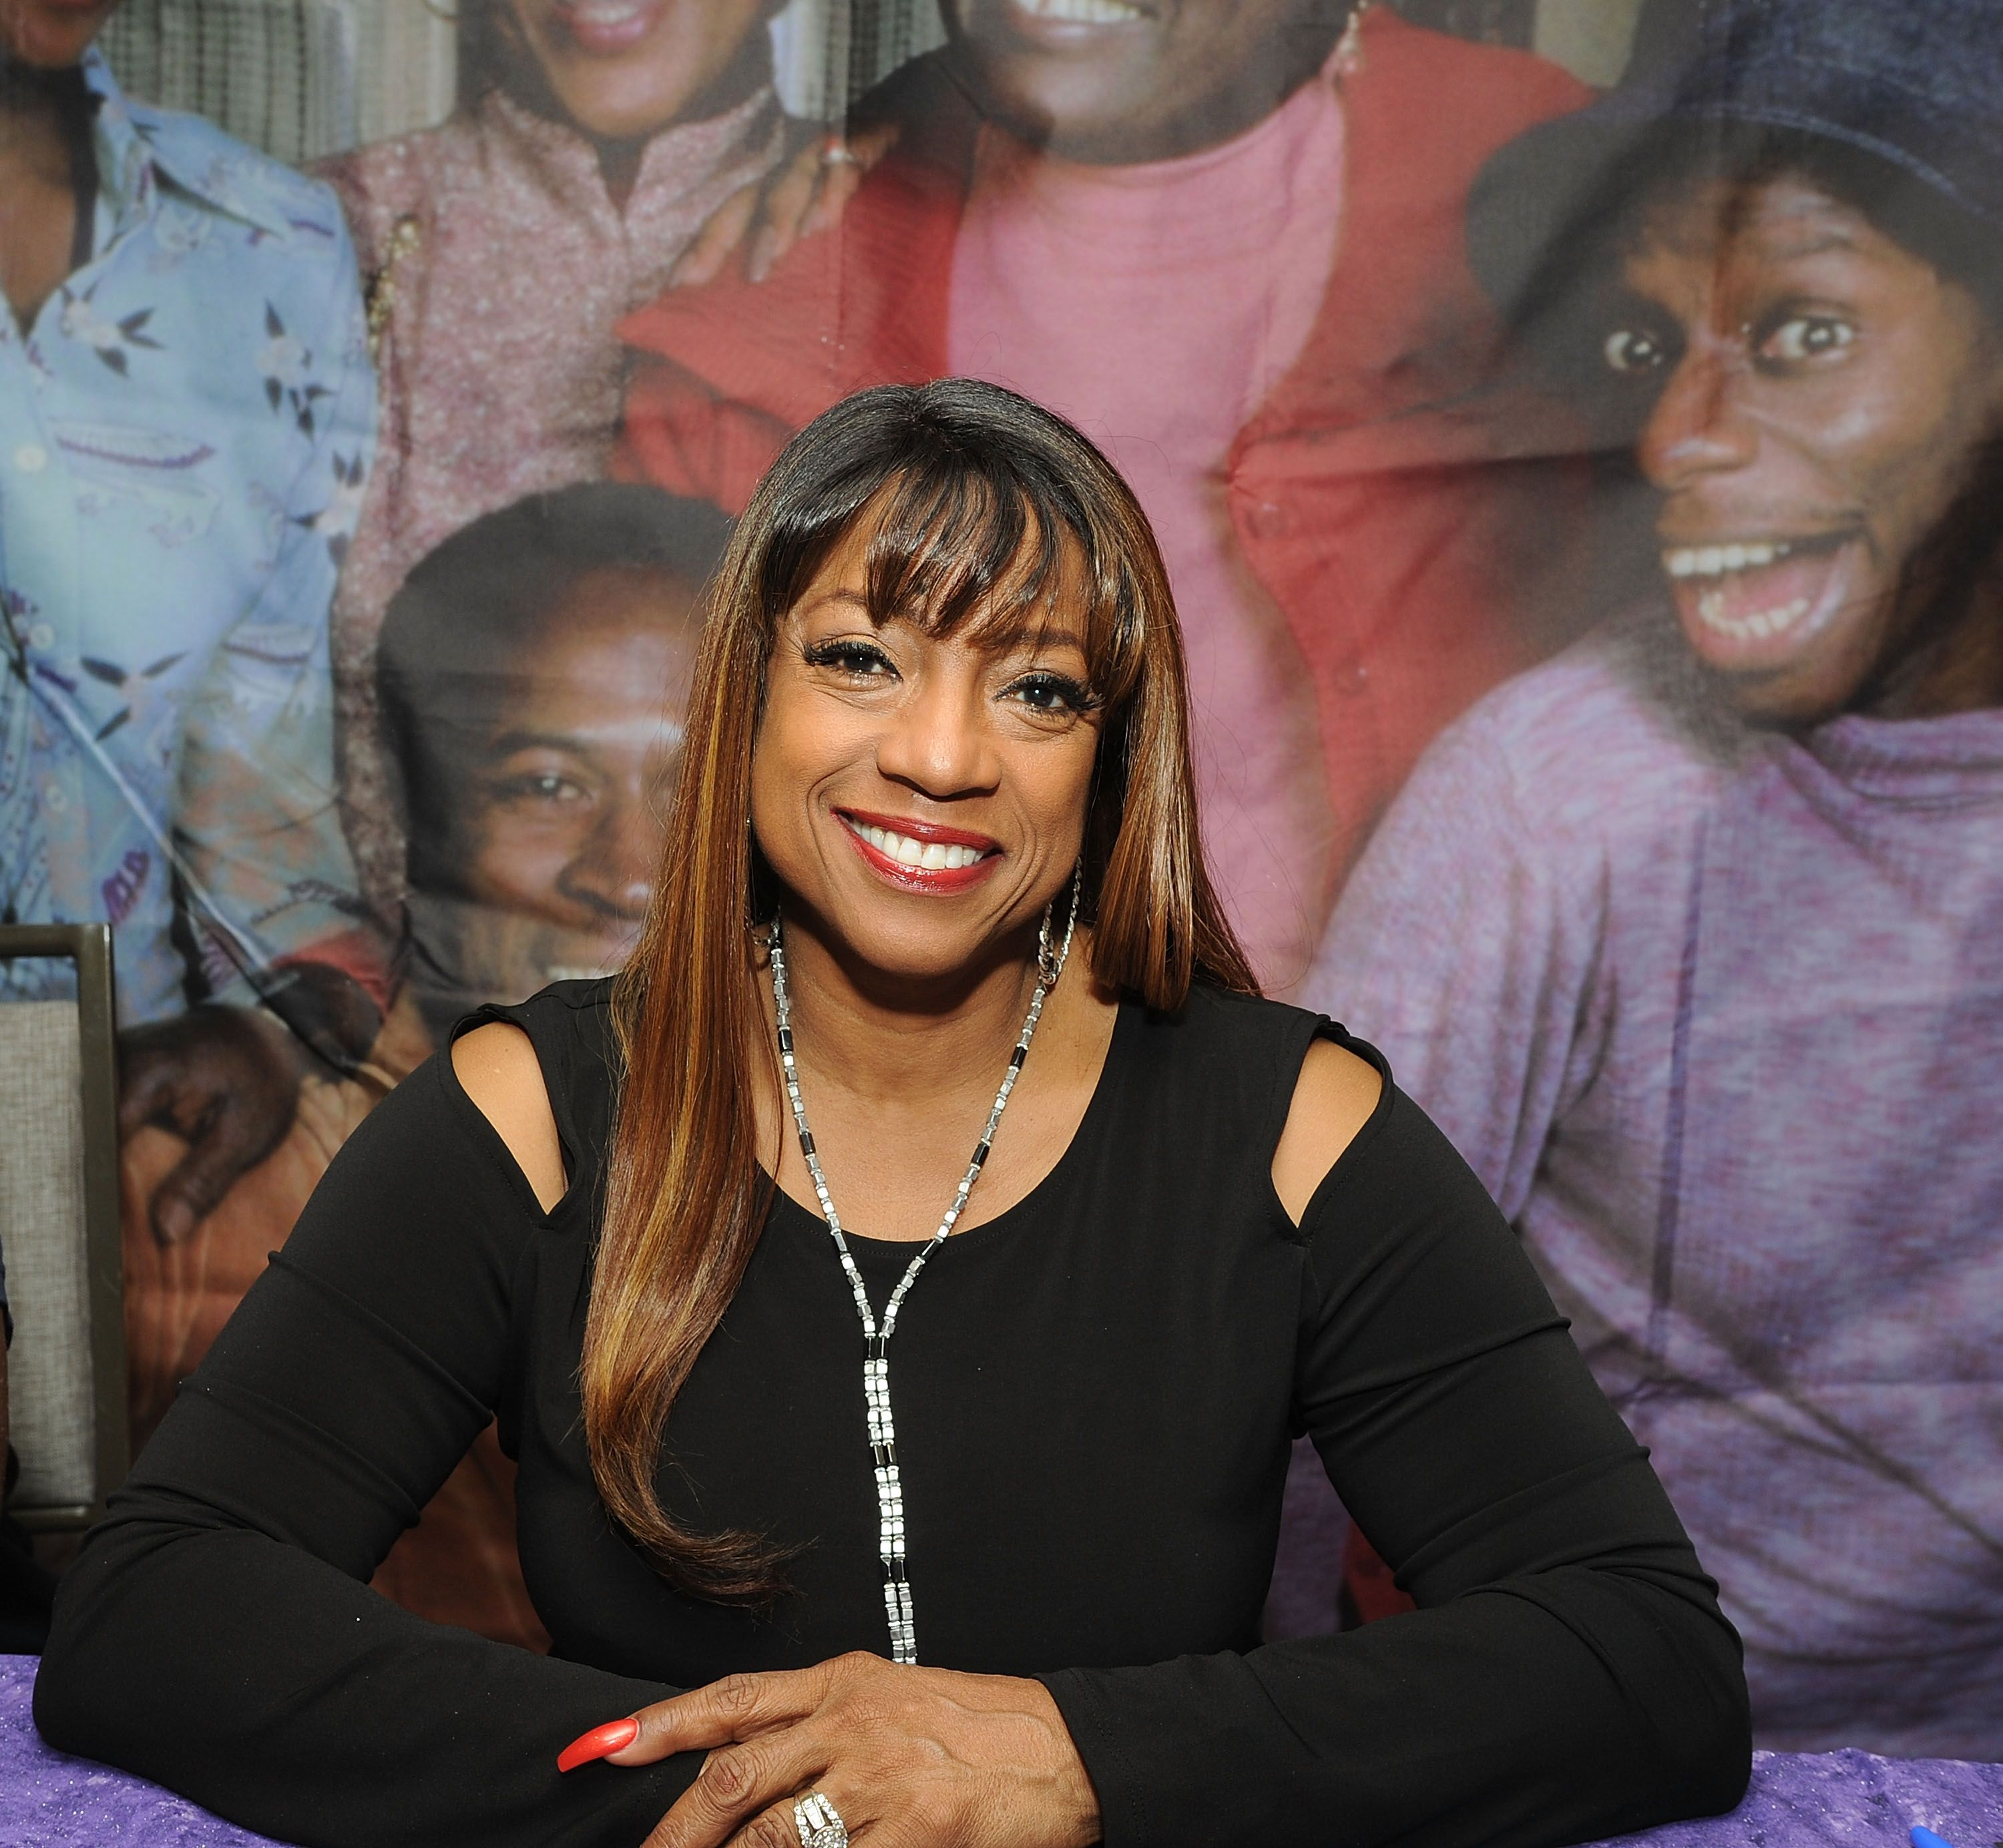 BernNadette Stanis attends the Chiller Theatre Expo Fall 2018 at Hilton Parsippany on October 26, 2018. | Photo: Getty Images